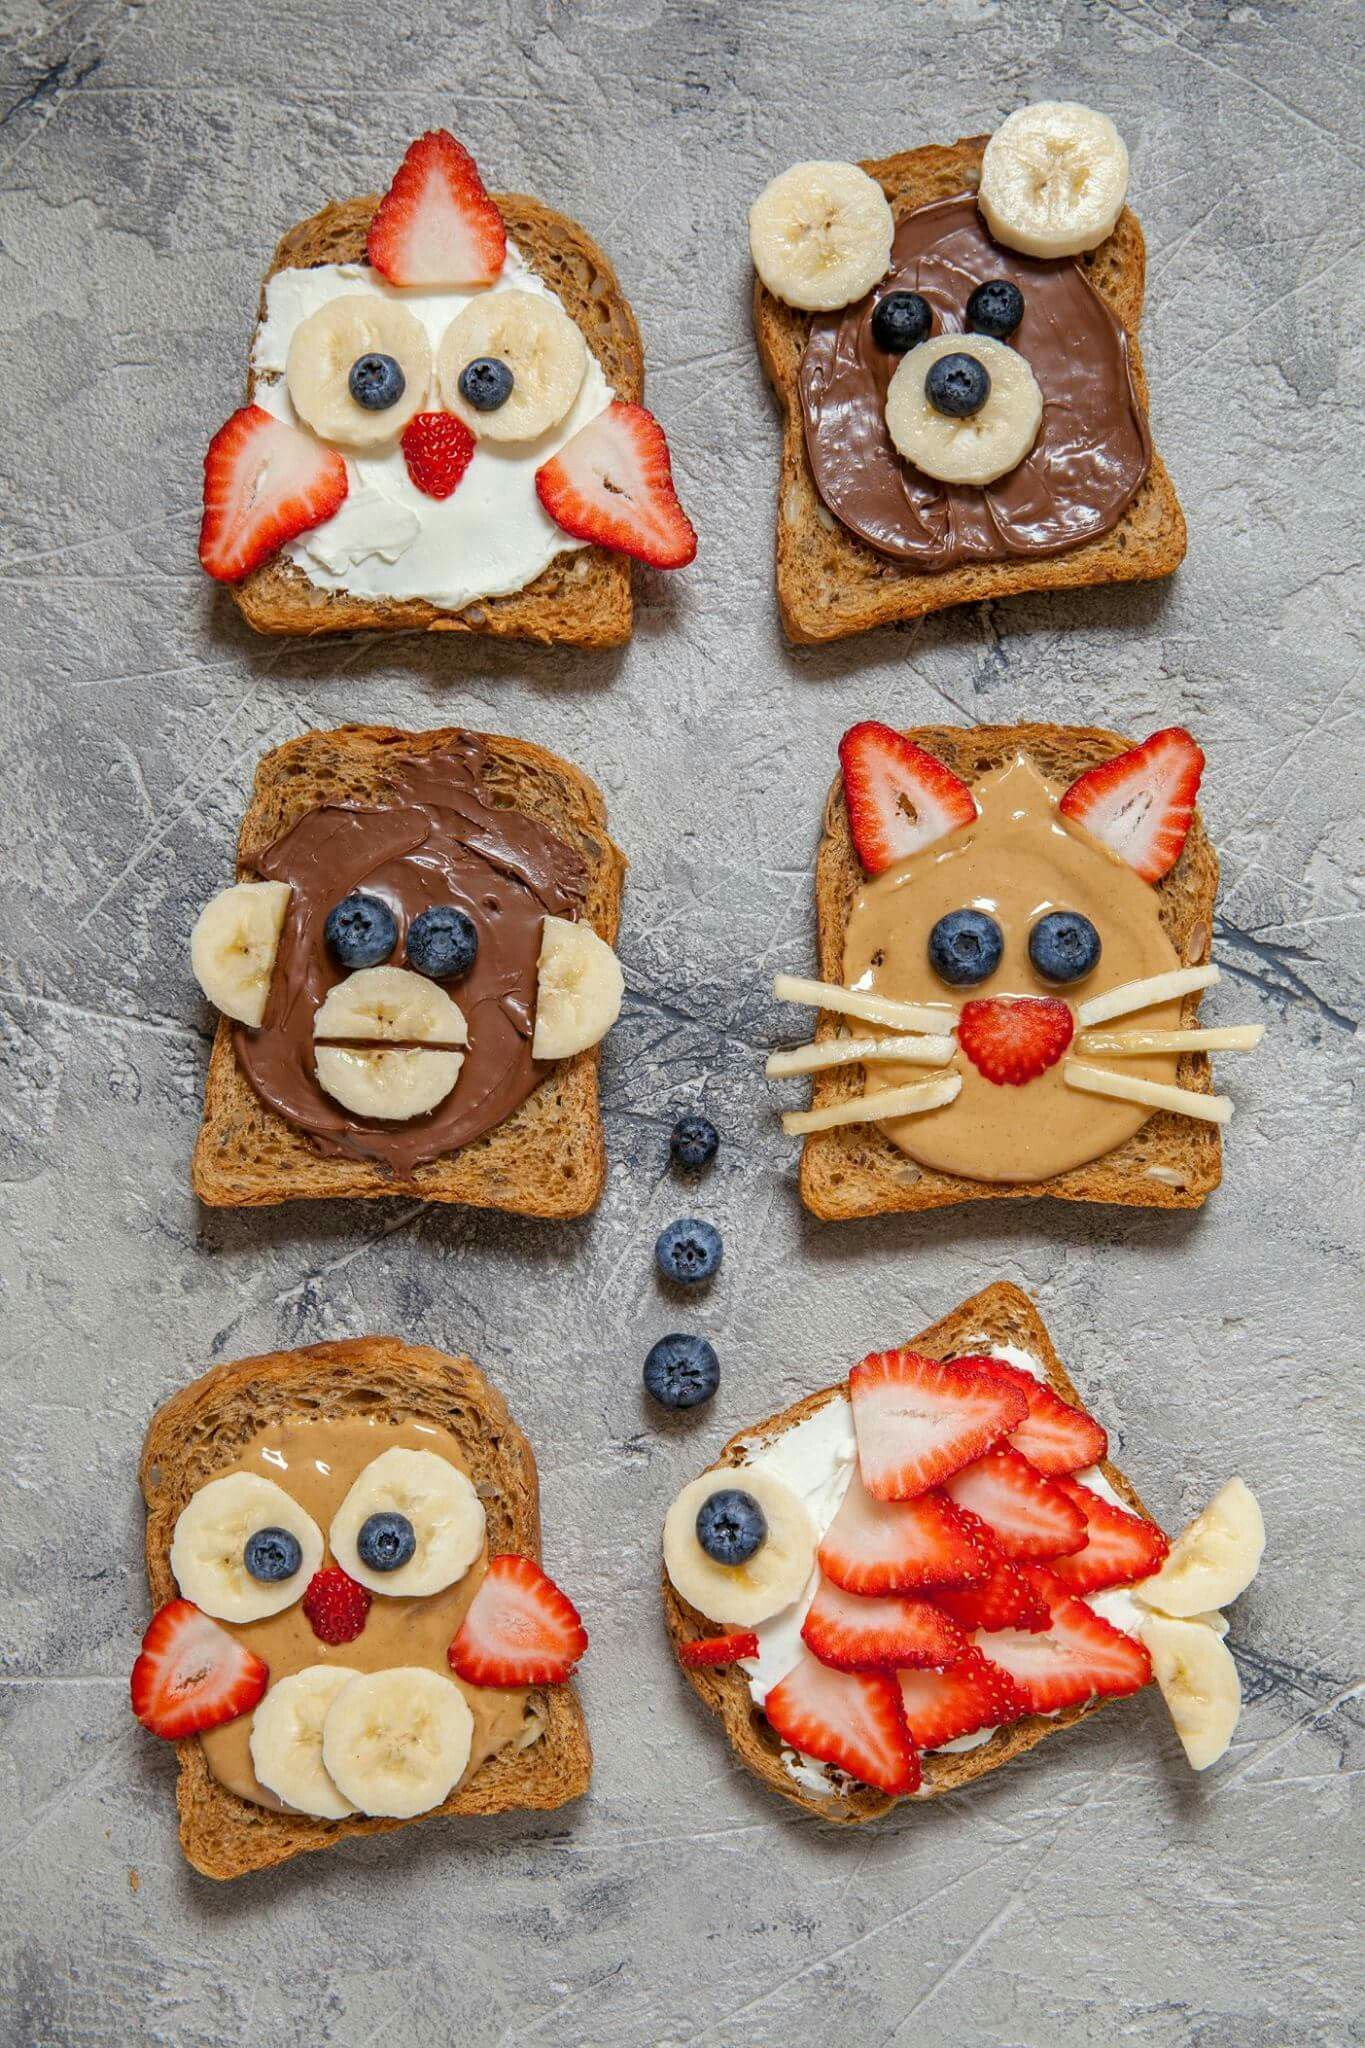 Pin By Ines Zagreb On Lilianah And Kaleah Food Baby Food Recipes Fun Kids Food Breakfast For Kids